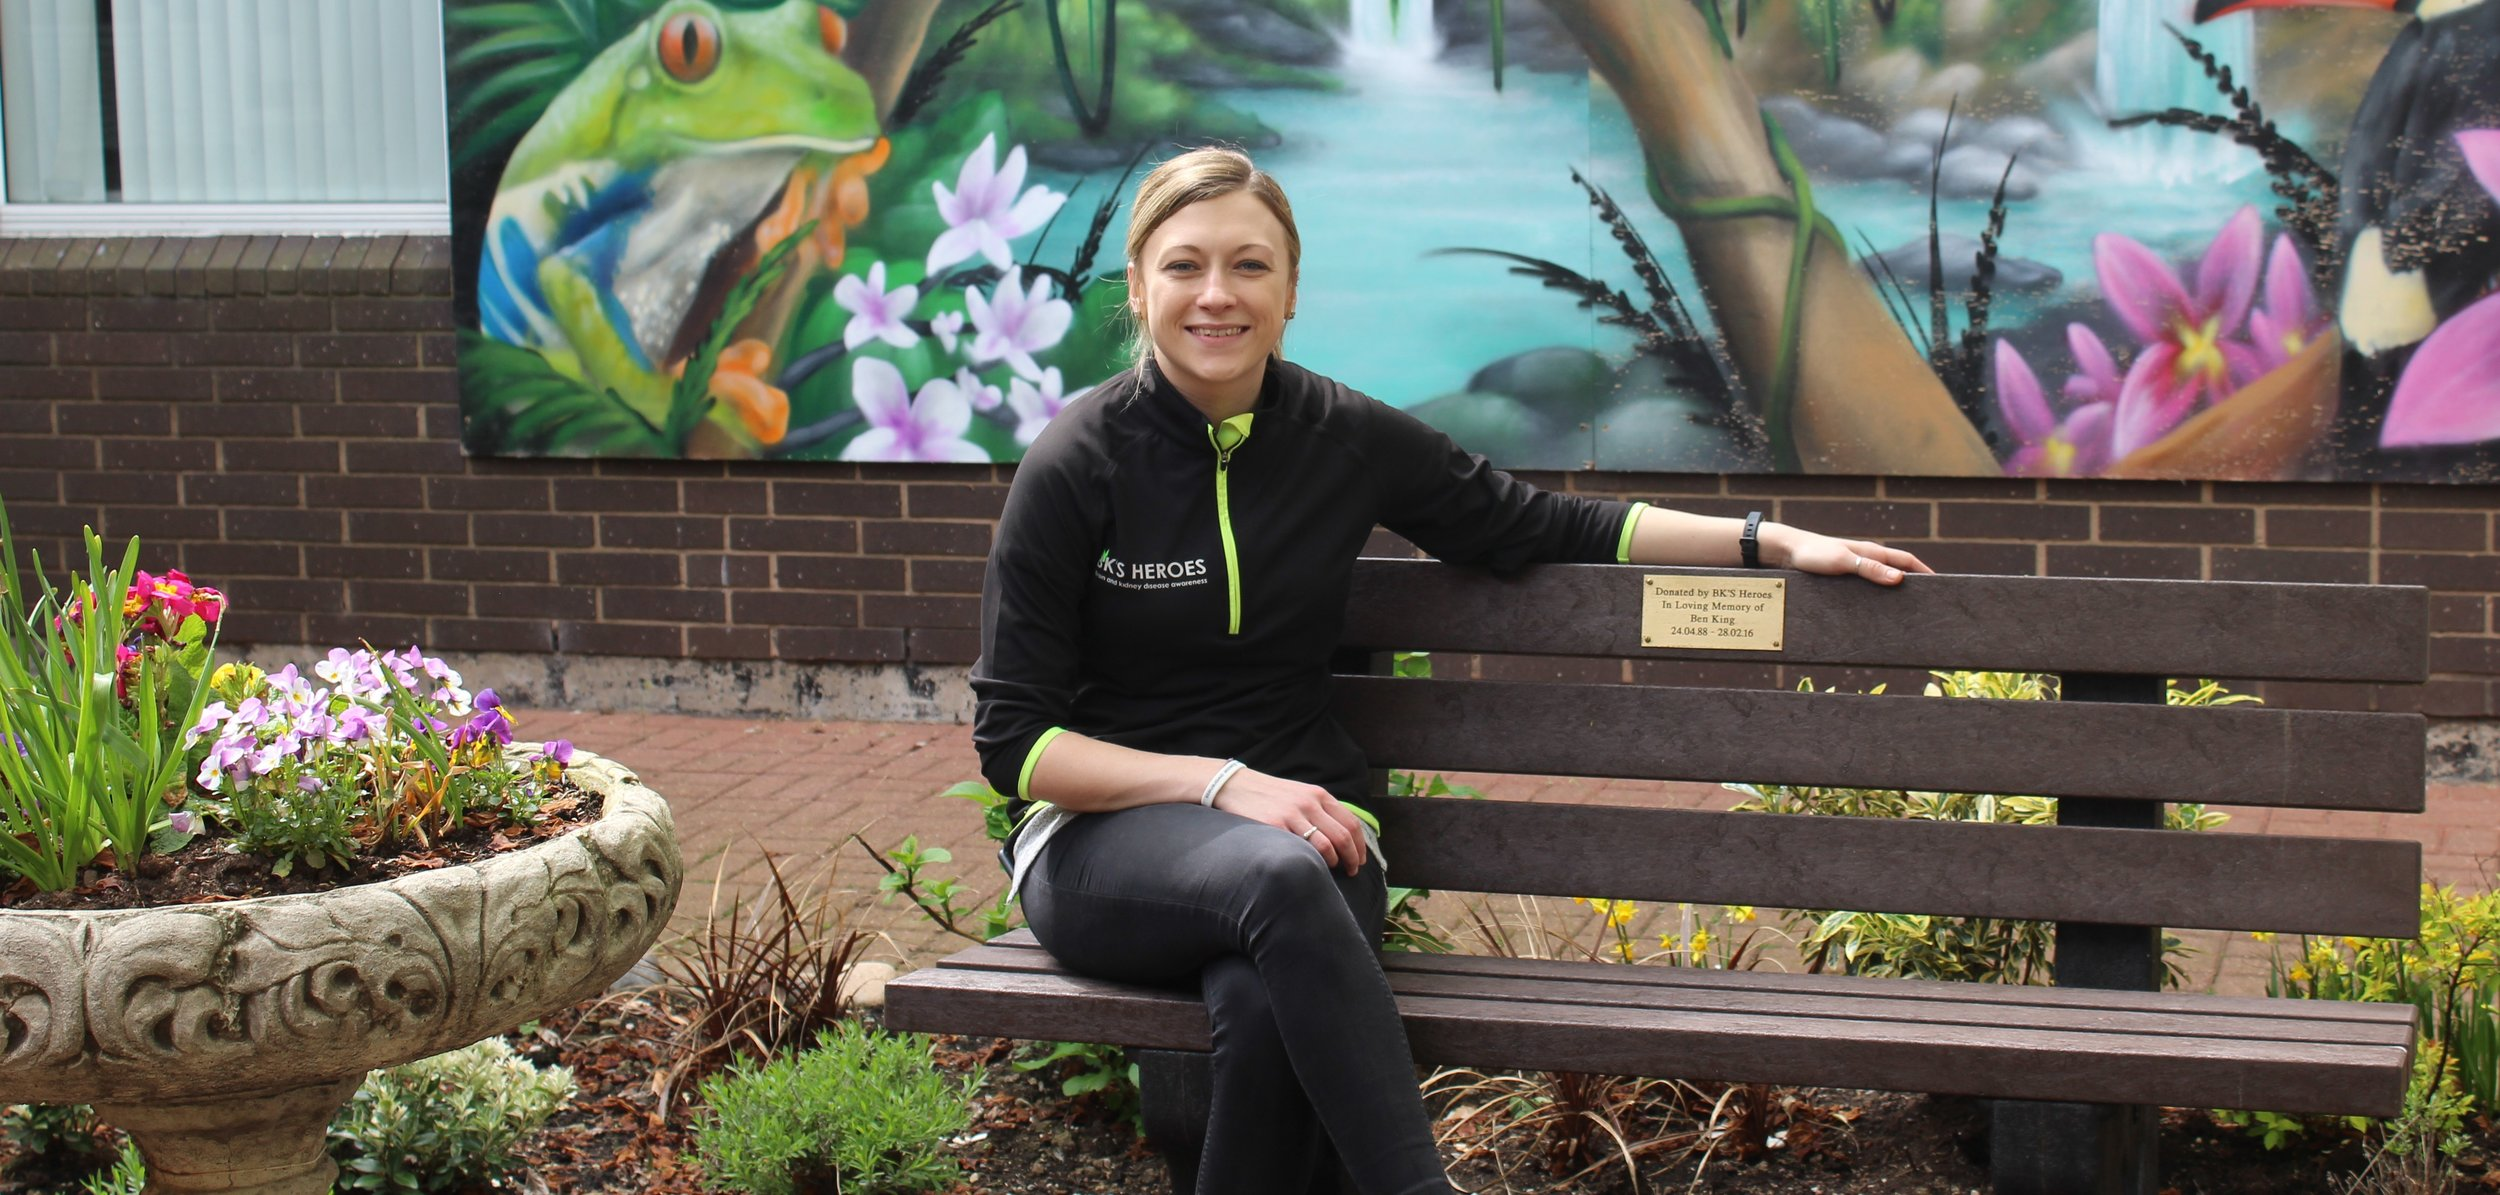 Dan, our newest member of the bk's heroes team visiting bens memorial bench in the sensory garden at preston royal hospital